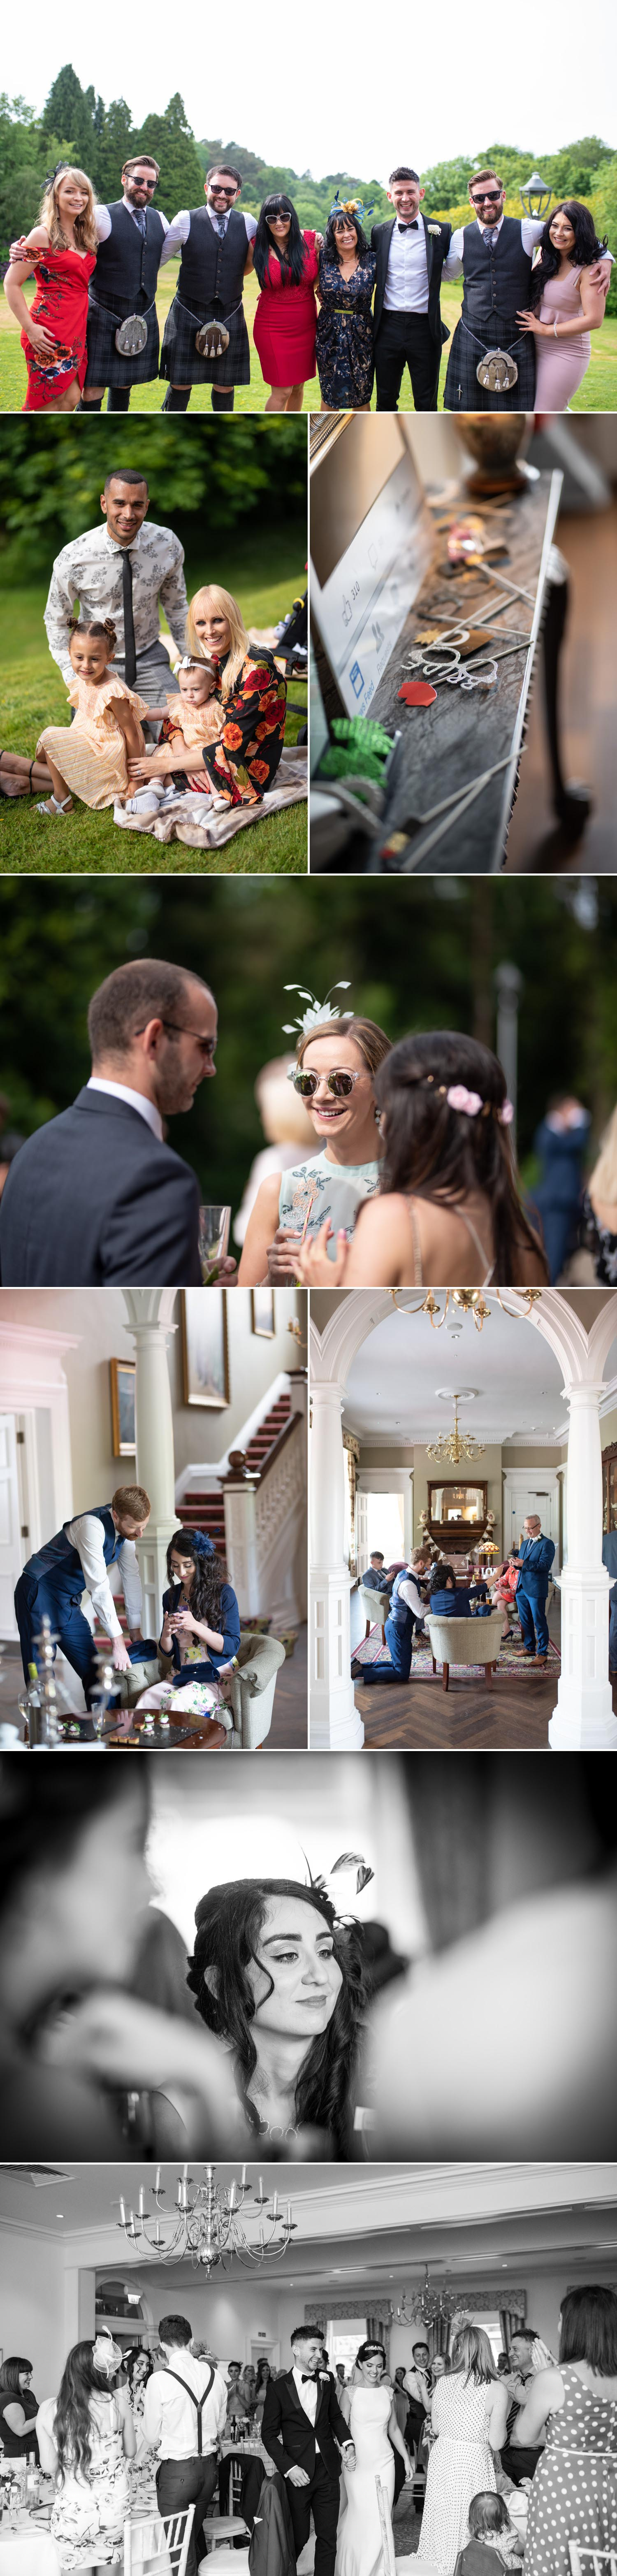 Cultra Manor Wedding Bangor 16.jpg